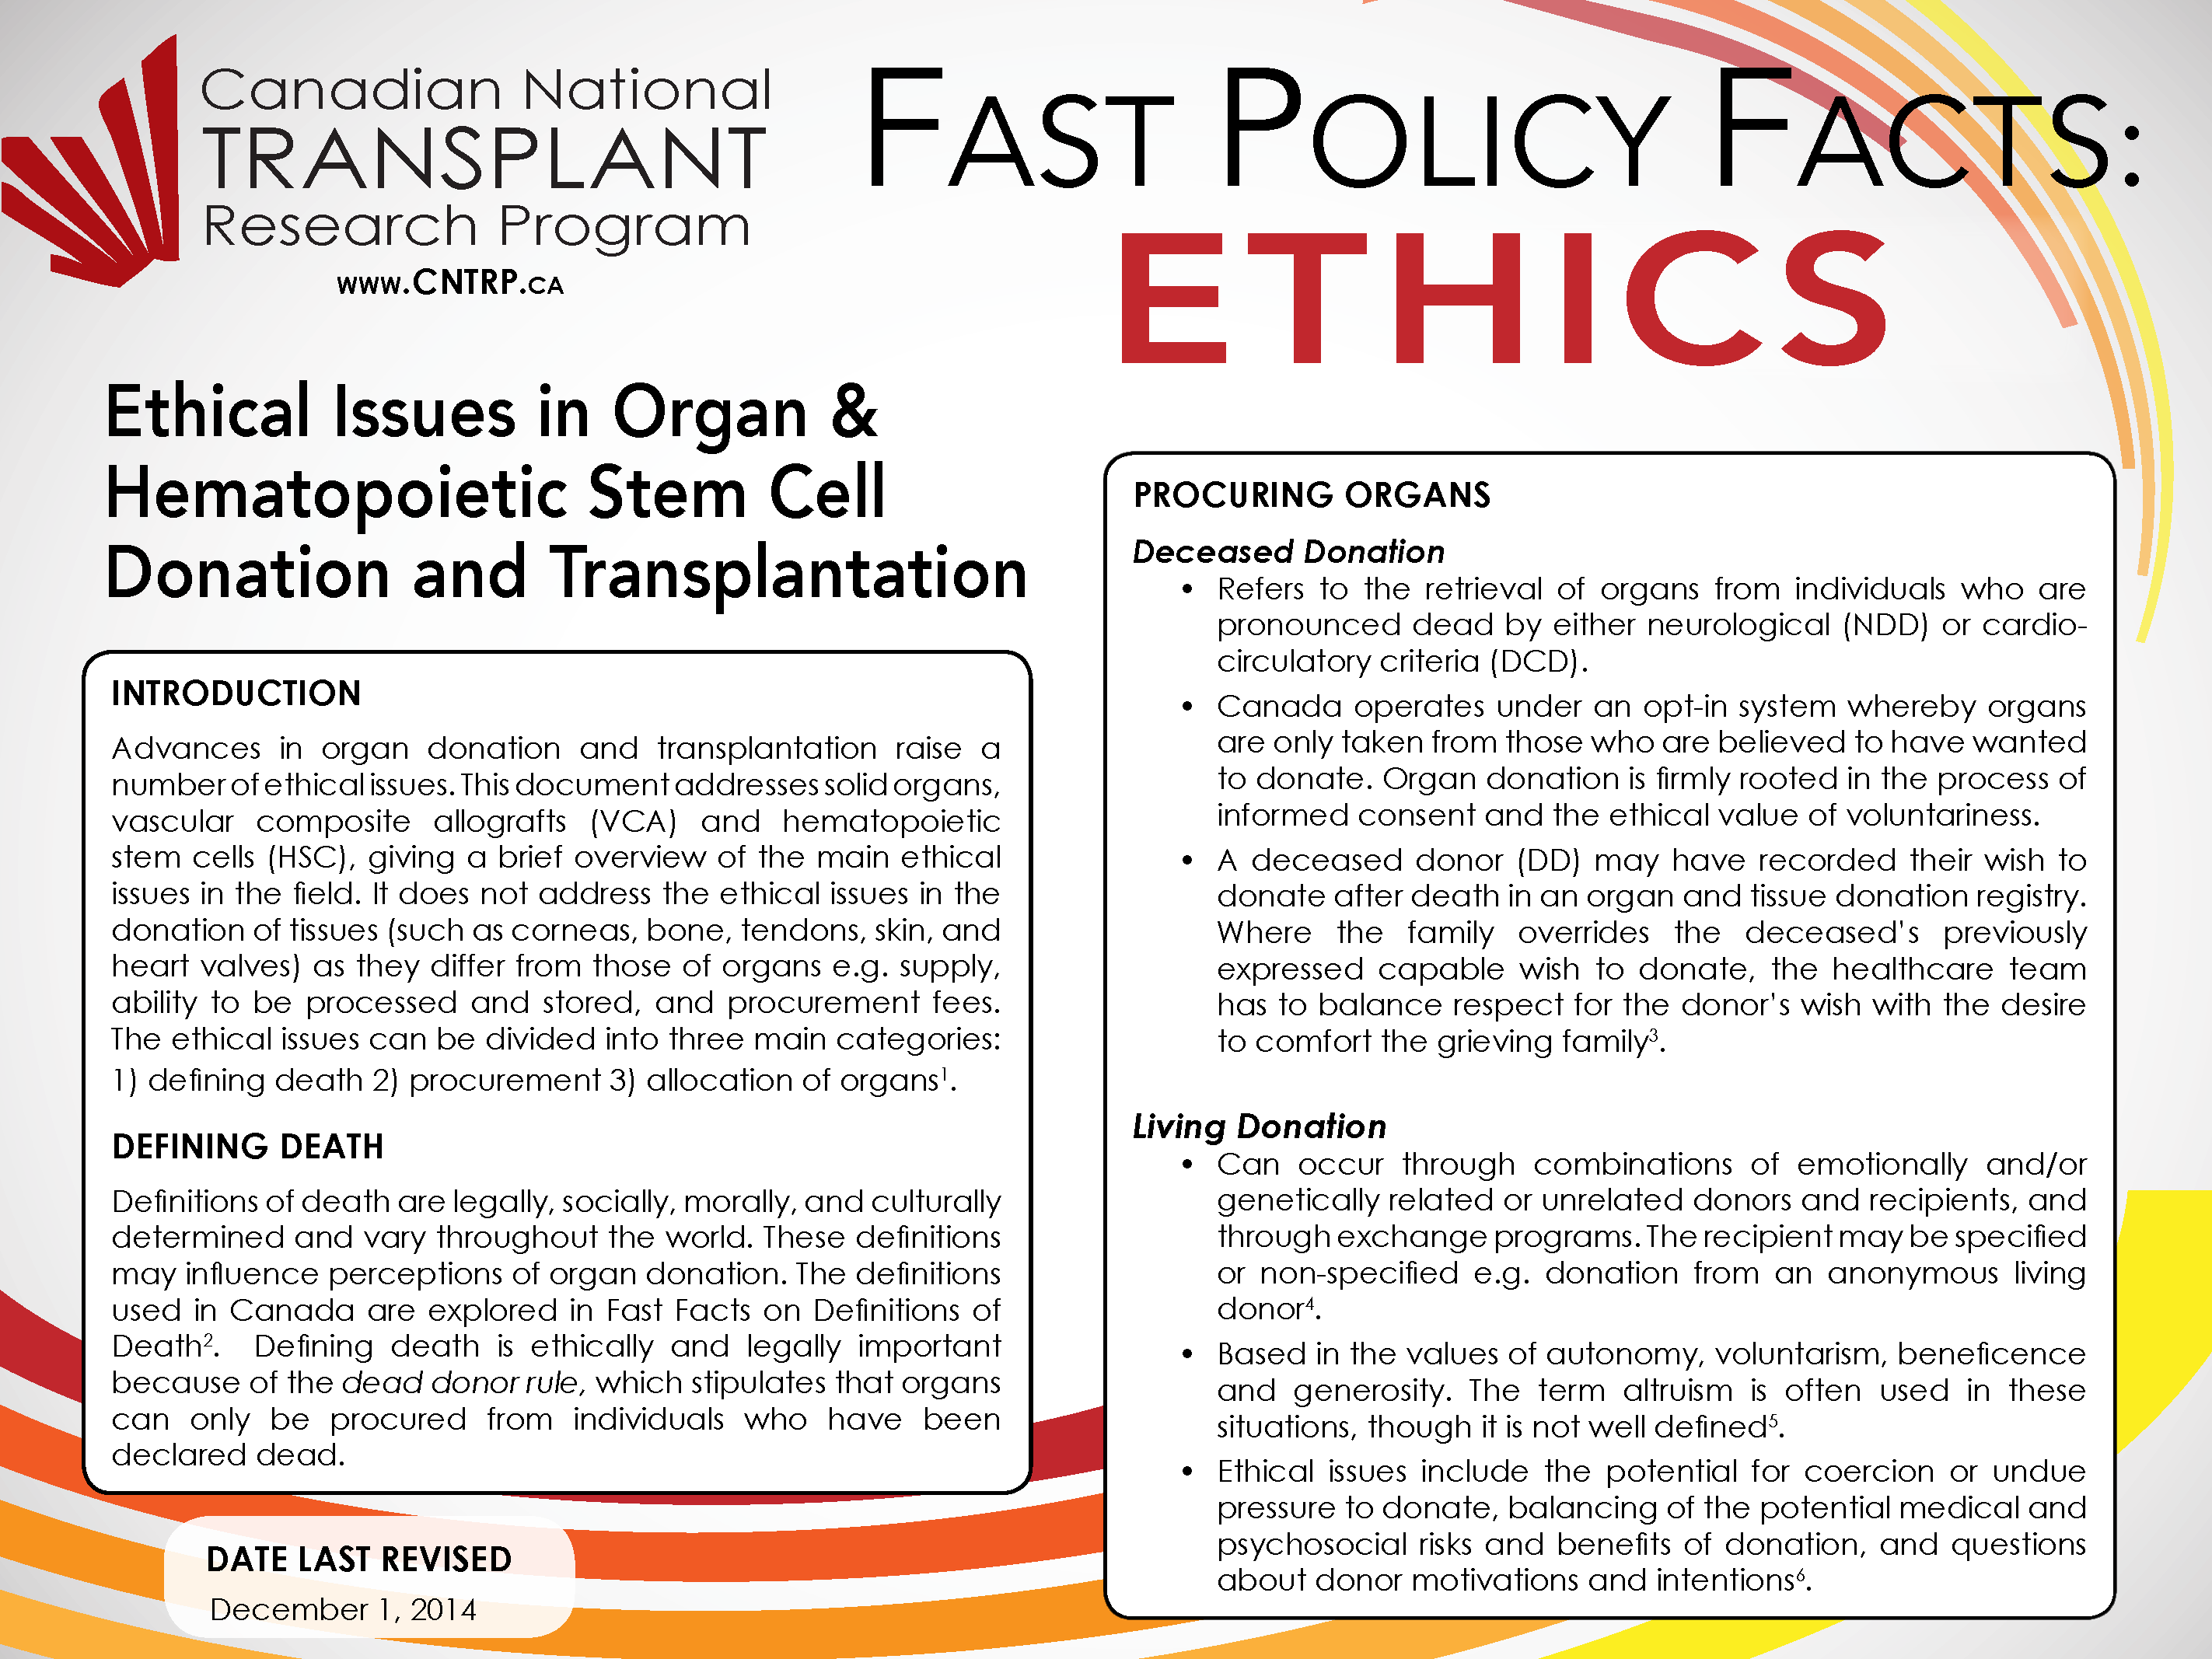 Organ Transplant Ethics Essay Donations Available People Who Passed Away Term Papers There Were Only  About  Basic Principle Then Organs Be Carried Out Biggest Best Bank Comparison Contrast Essay Example Paper also Essay About Good Health Thesis For A Persuasive Essay